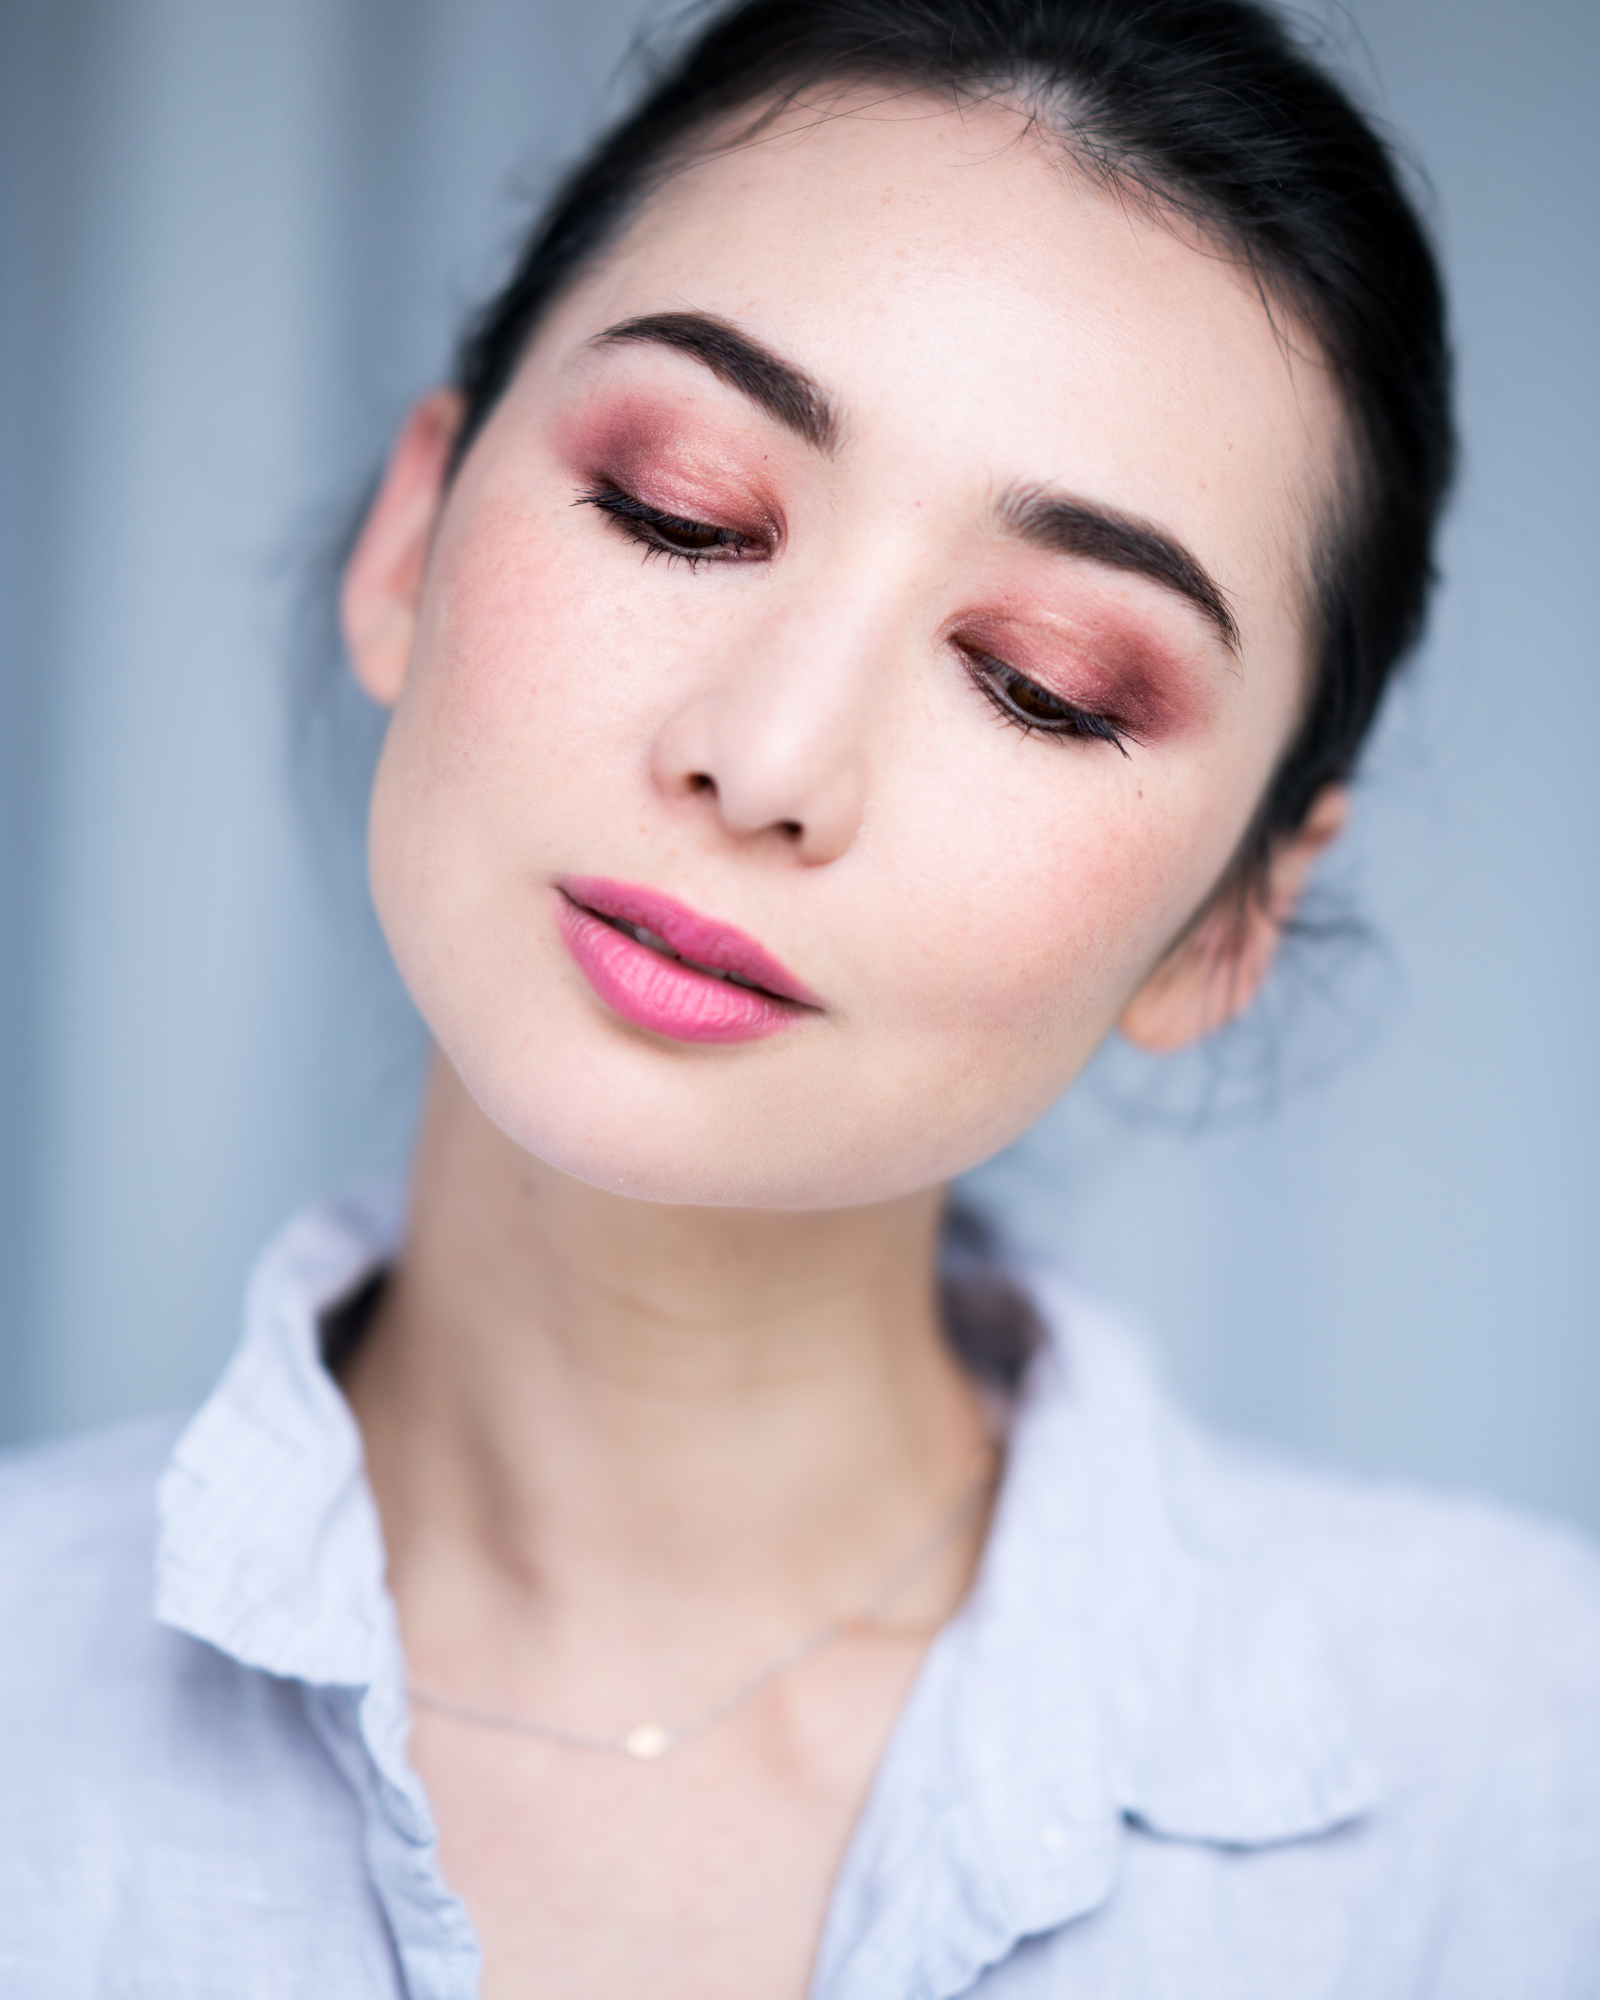 monochromatic pink makeup 3